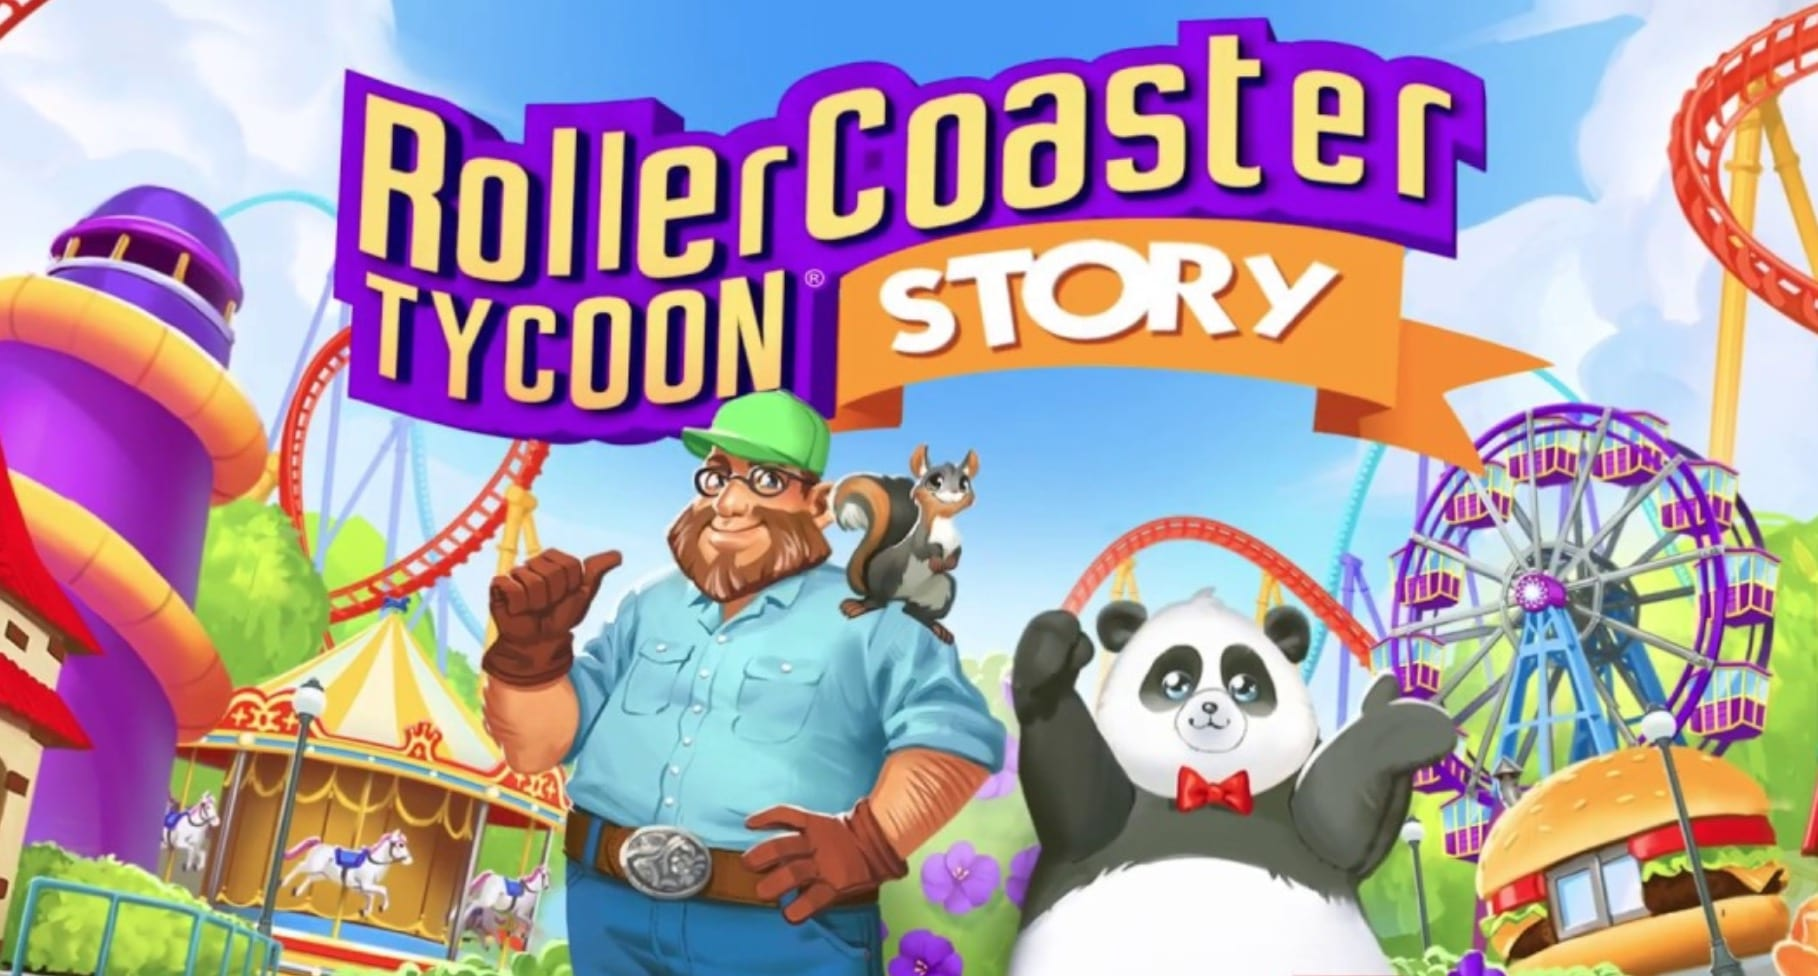 rollercoaster tycoon story, mobile game, atari